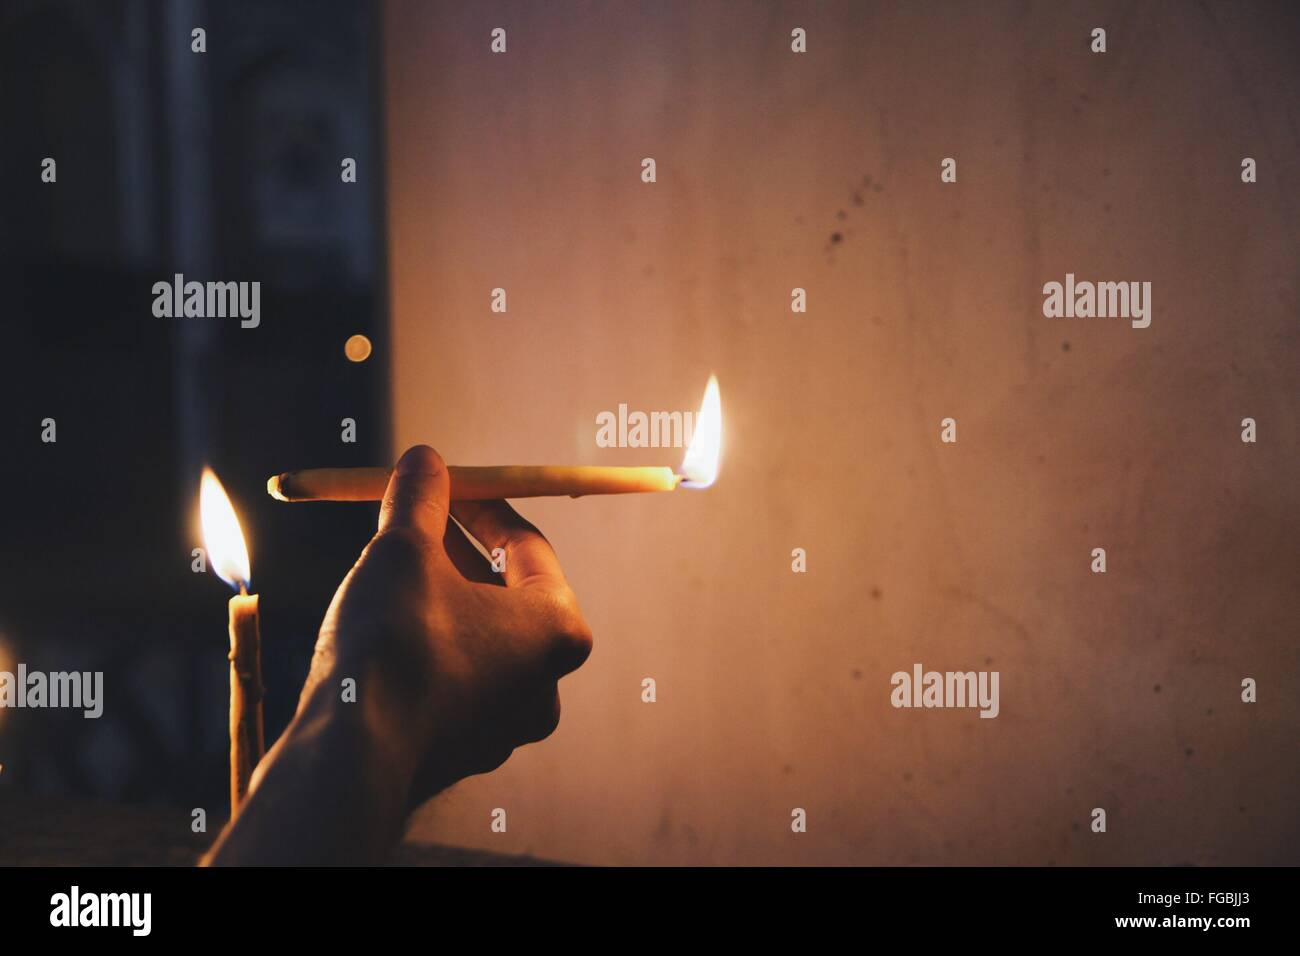 Cropped Hand Holding Lit Candle Against Wall - Stock Image